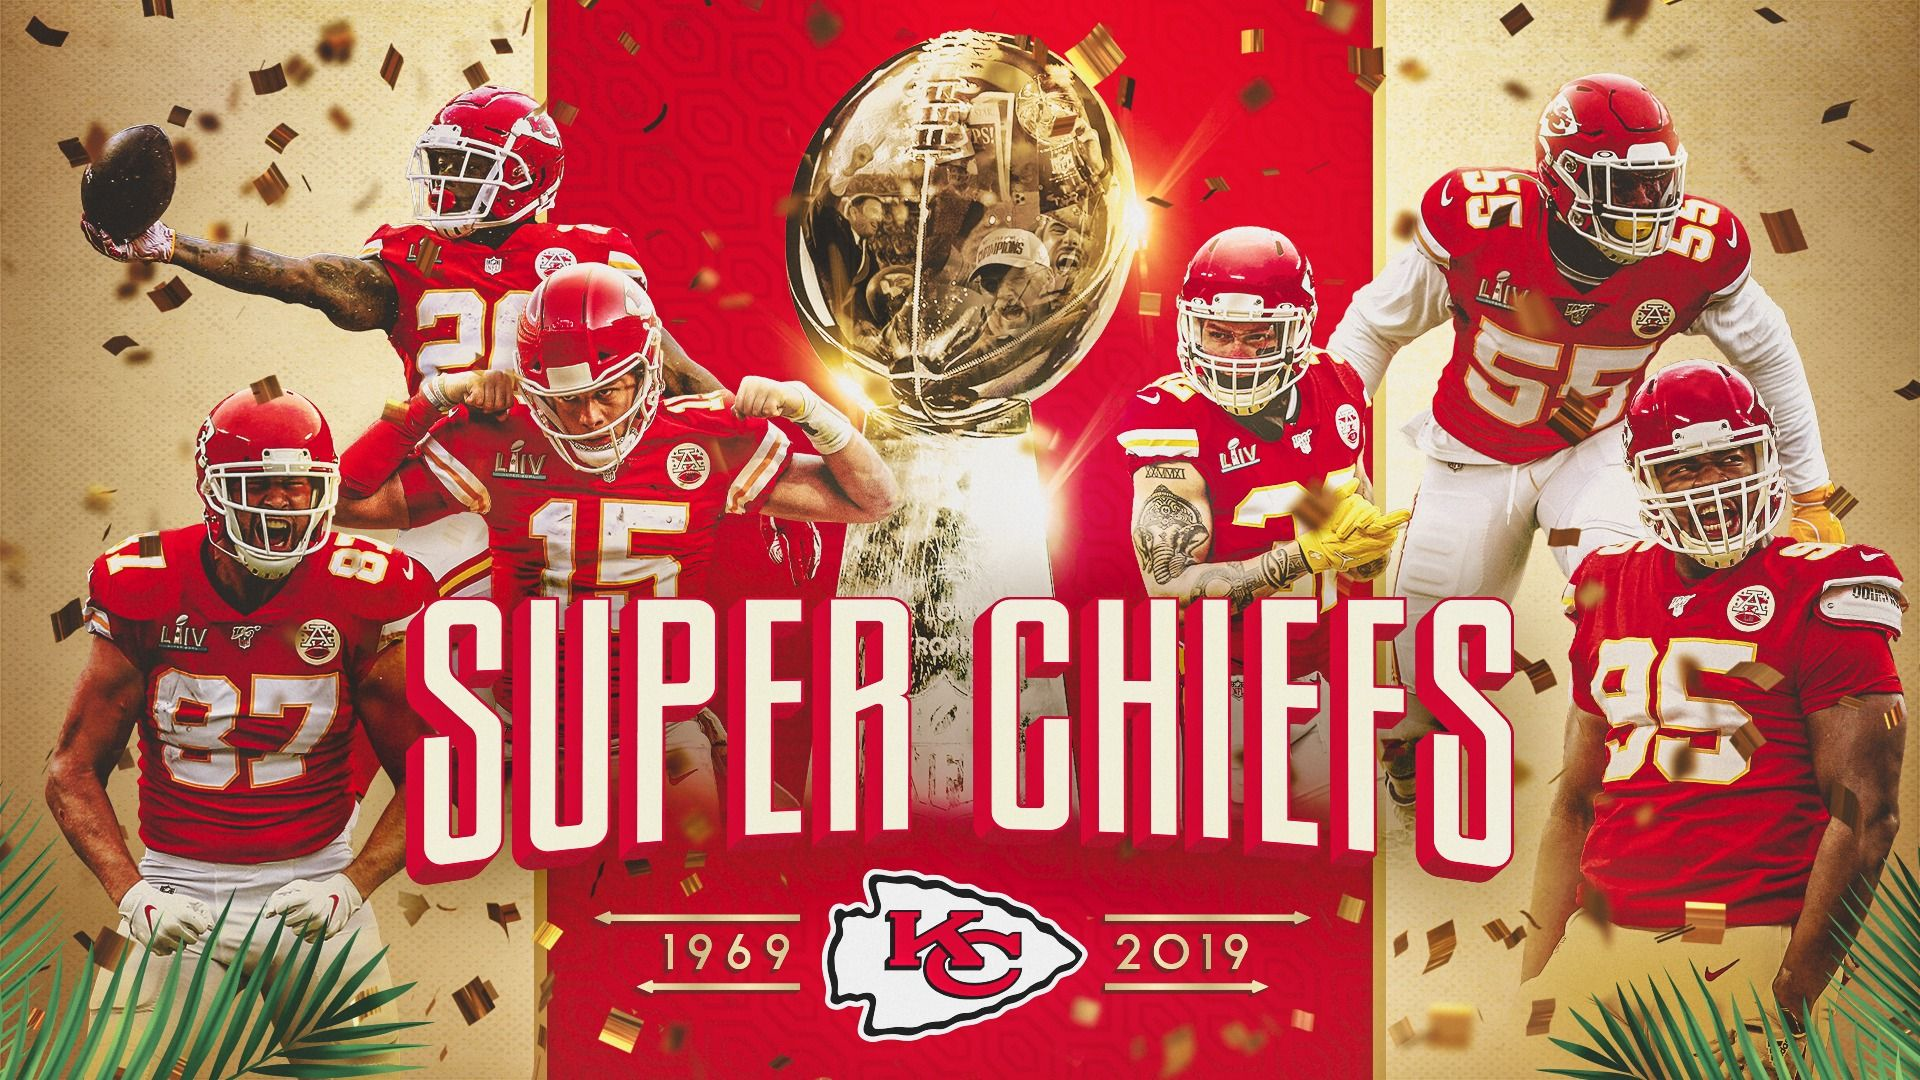 Kansas City Chiefs 2019 Nfl Super Bowl Champions In 2020 Kansas City Chiefs Logo Kansas City Chiefs Kansas City Chiefs Football